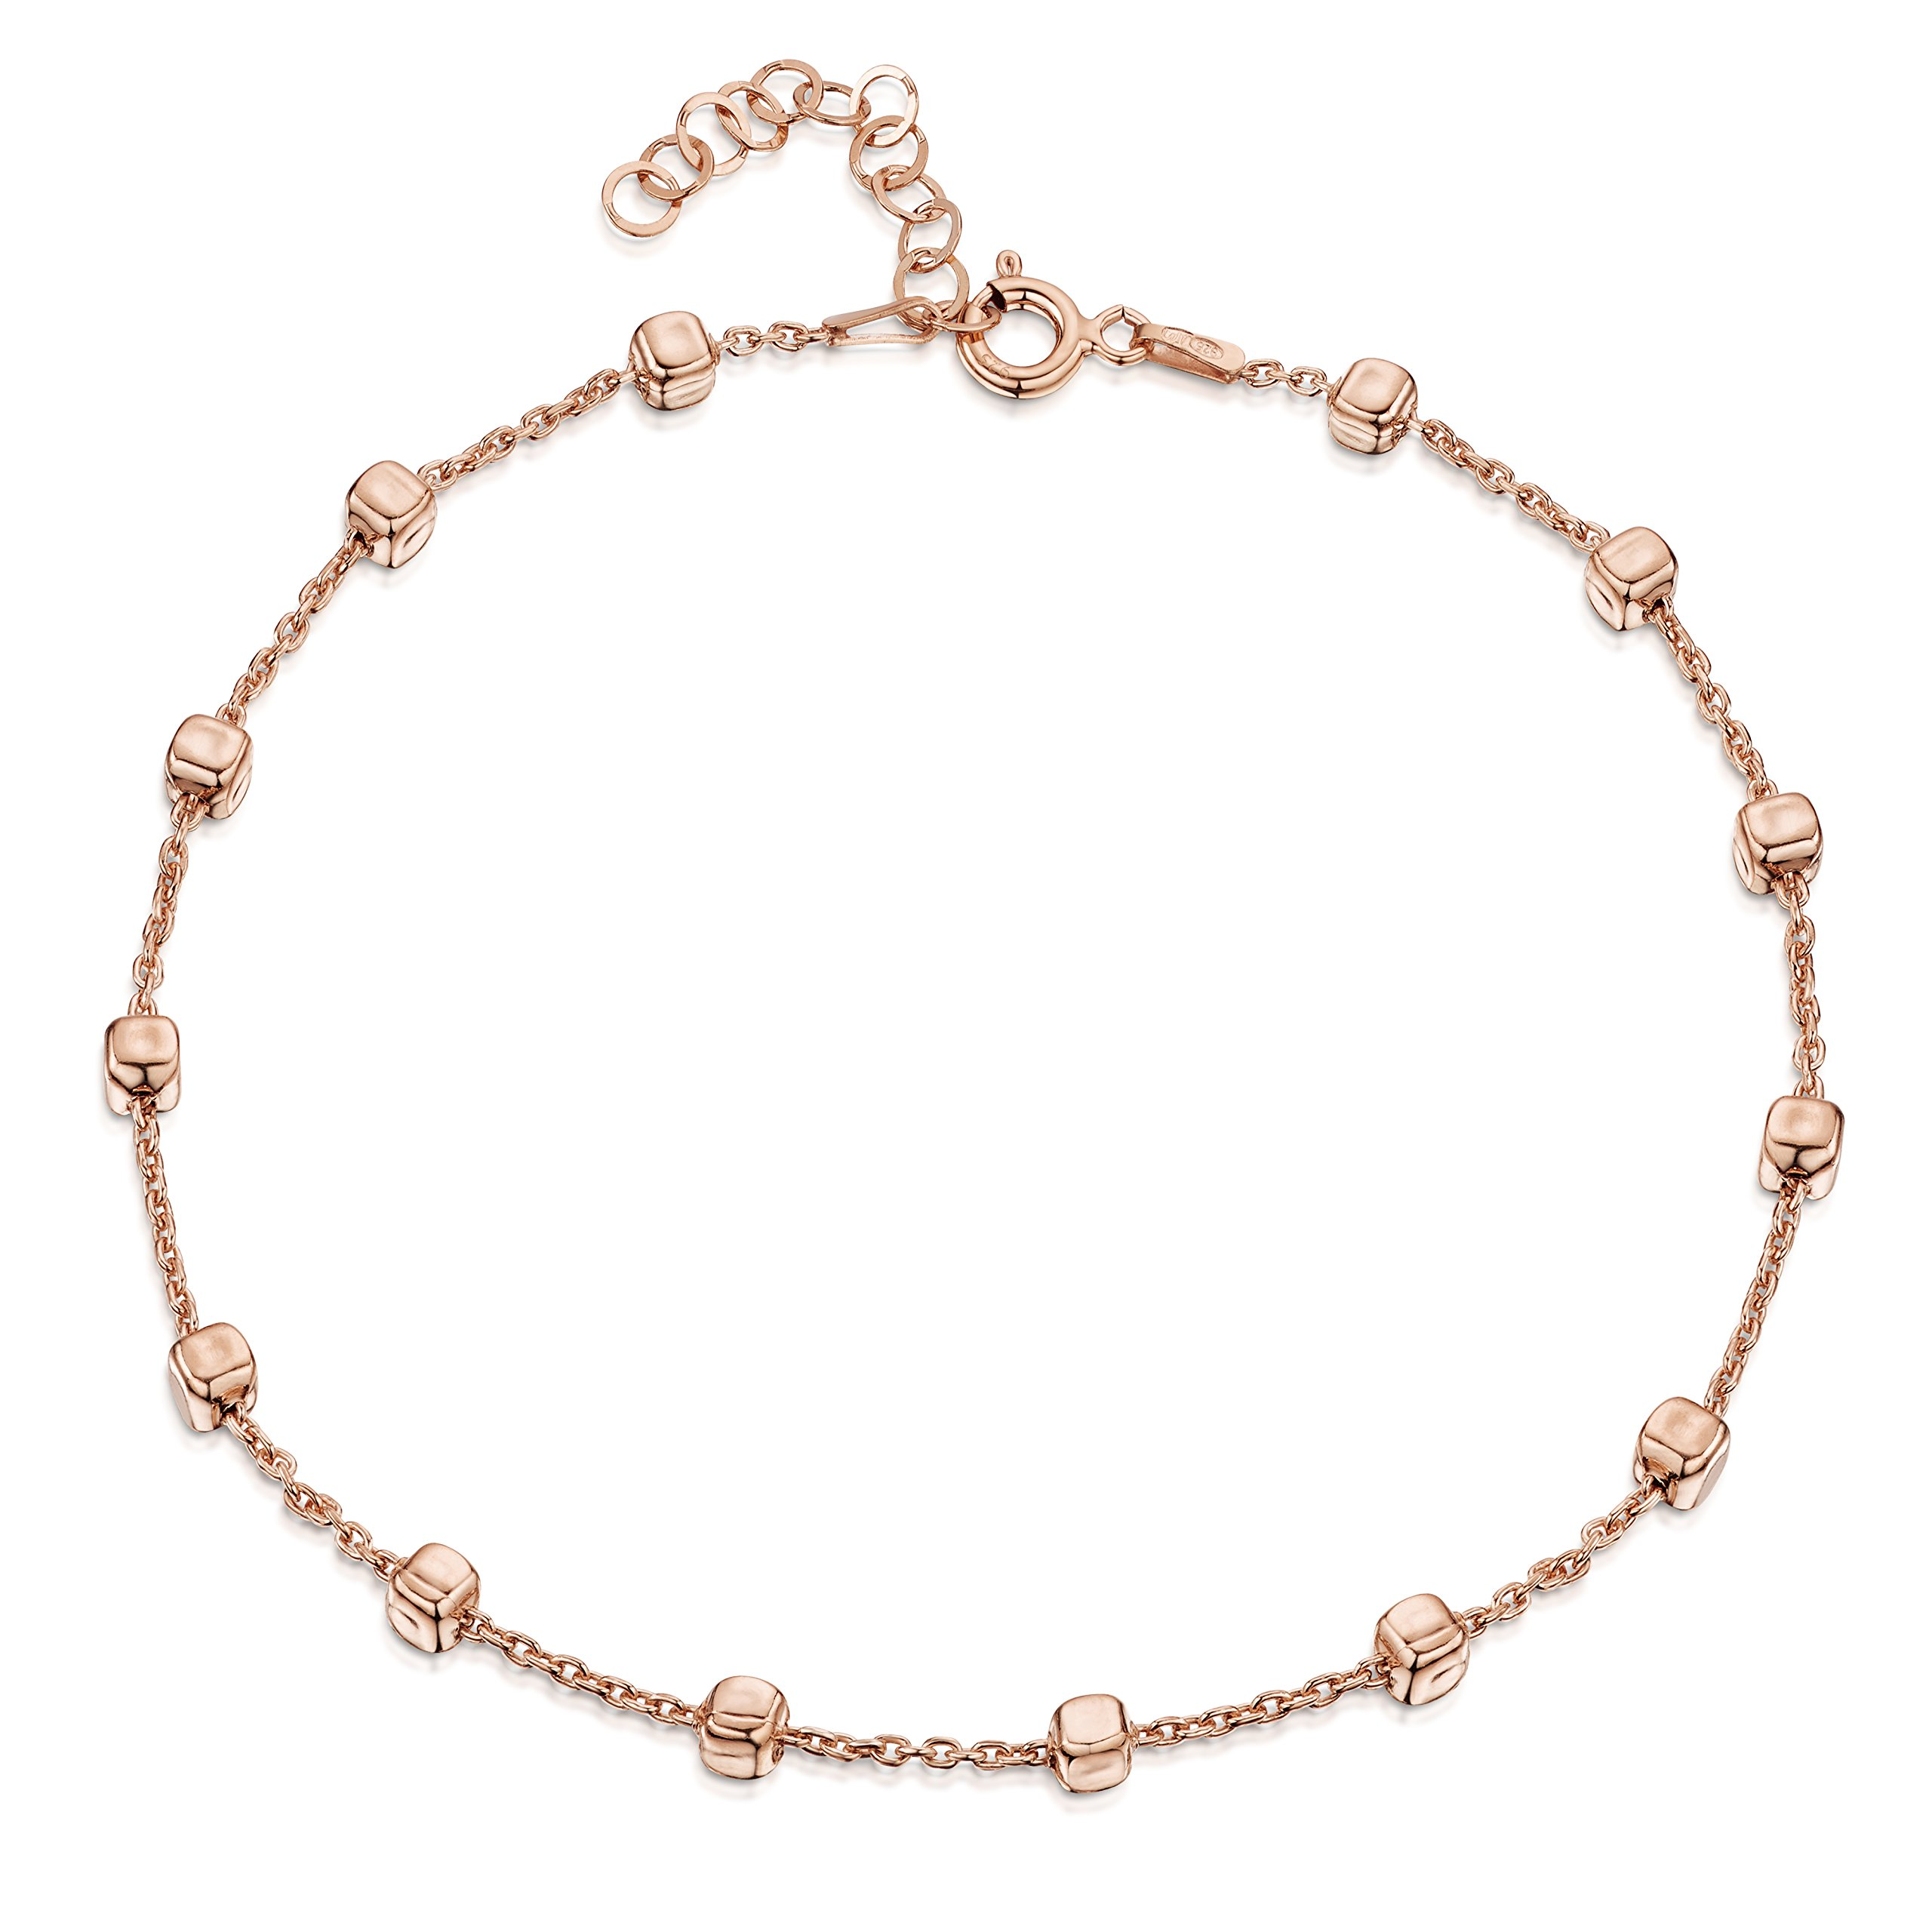 14K Rose Gold Plated on 925 Fine Sterling Silver 1.7 mm Adjustable Anklet - Trace Chain with 3.2 mm Cube Beads Ankle Bracelet - 9'' to 10'' inch - Flexible Fit